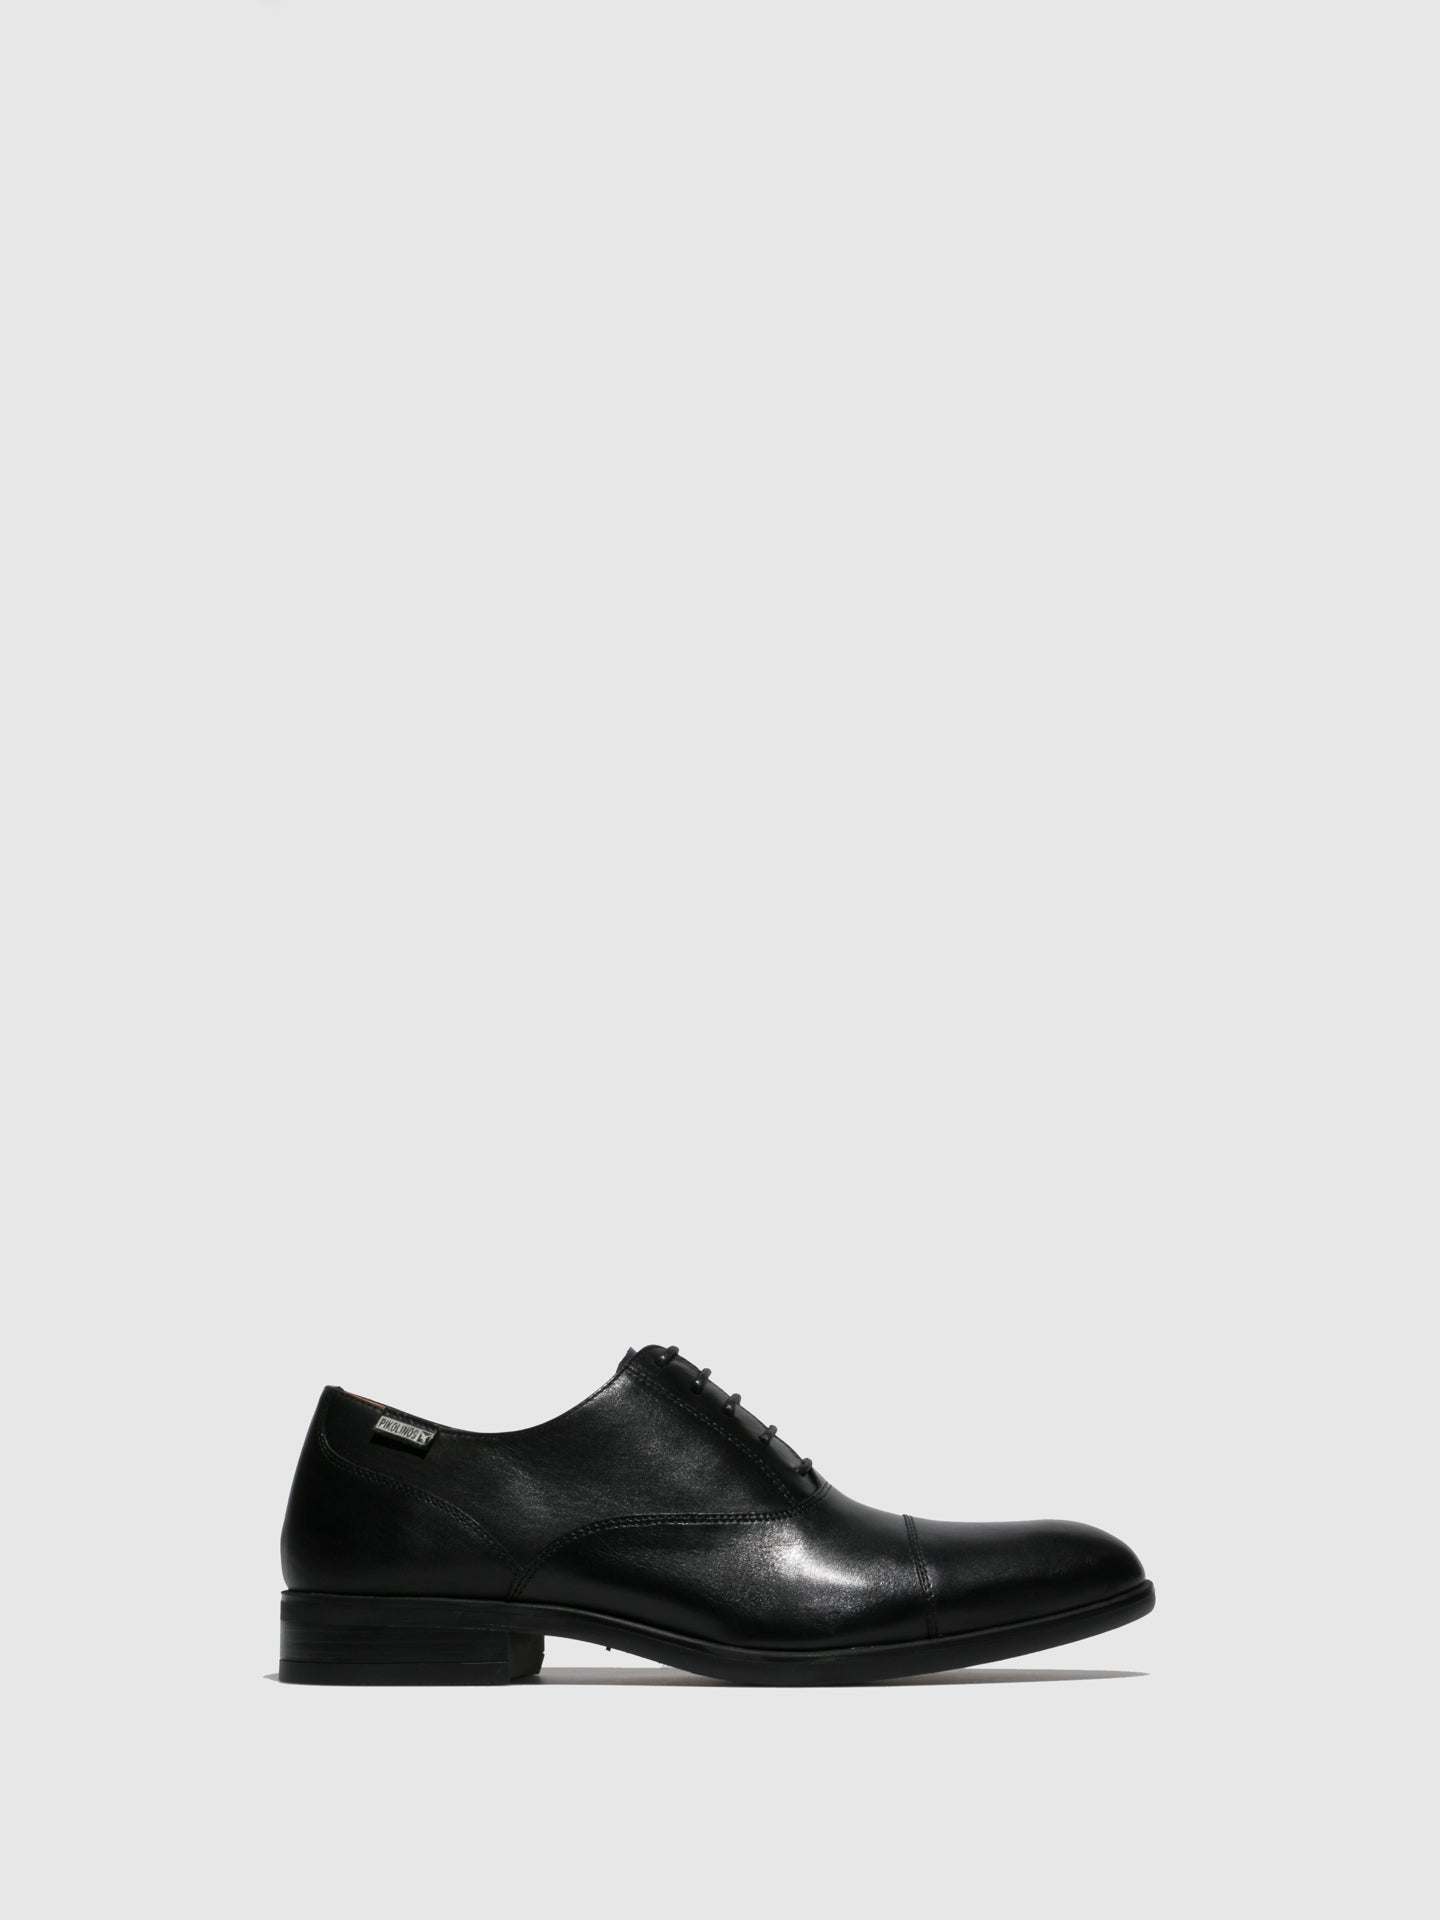 Pikolinos Black Lace-up Shoes